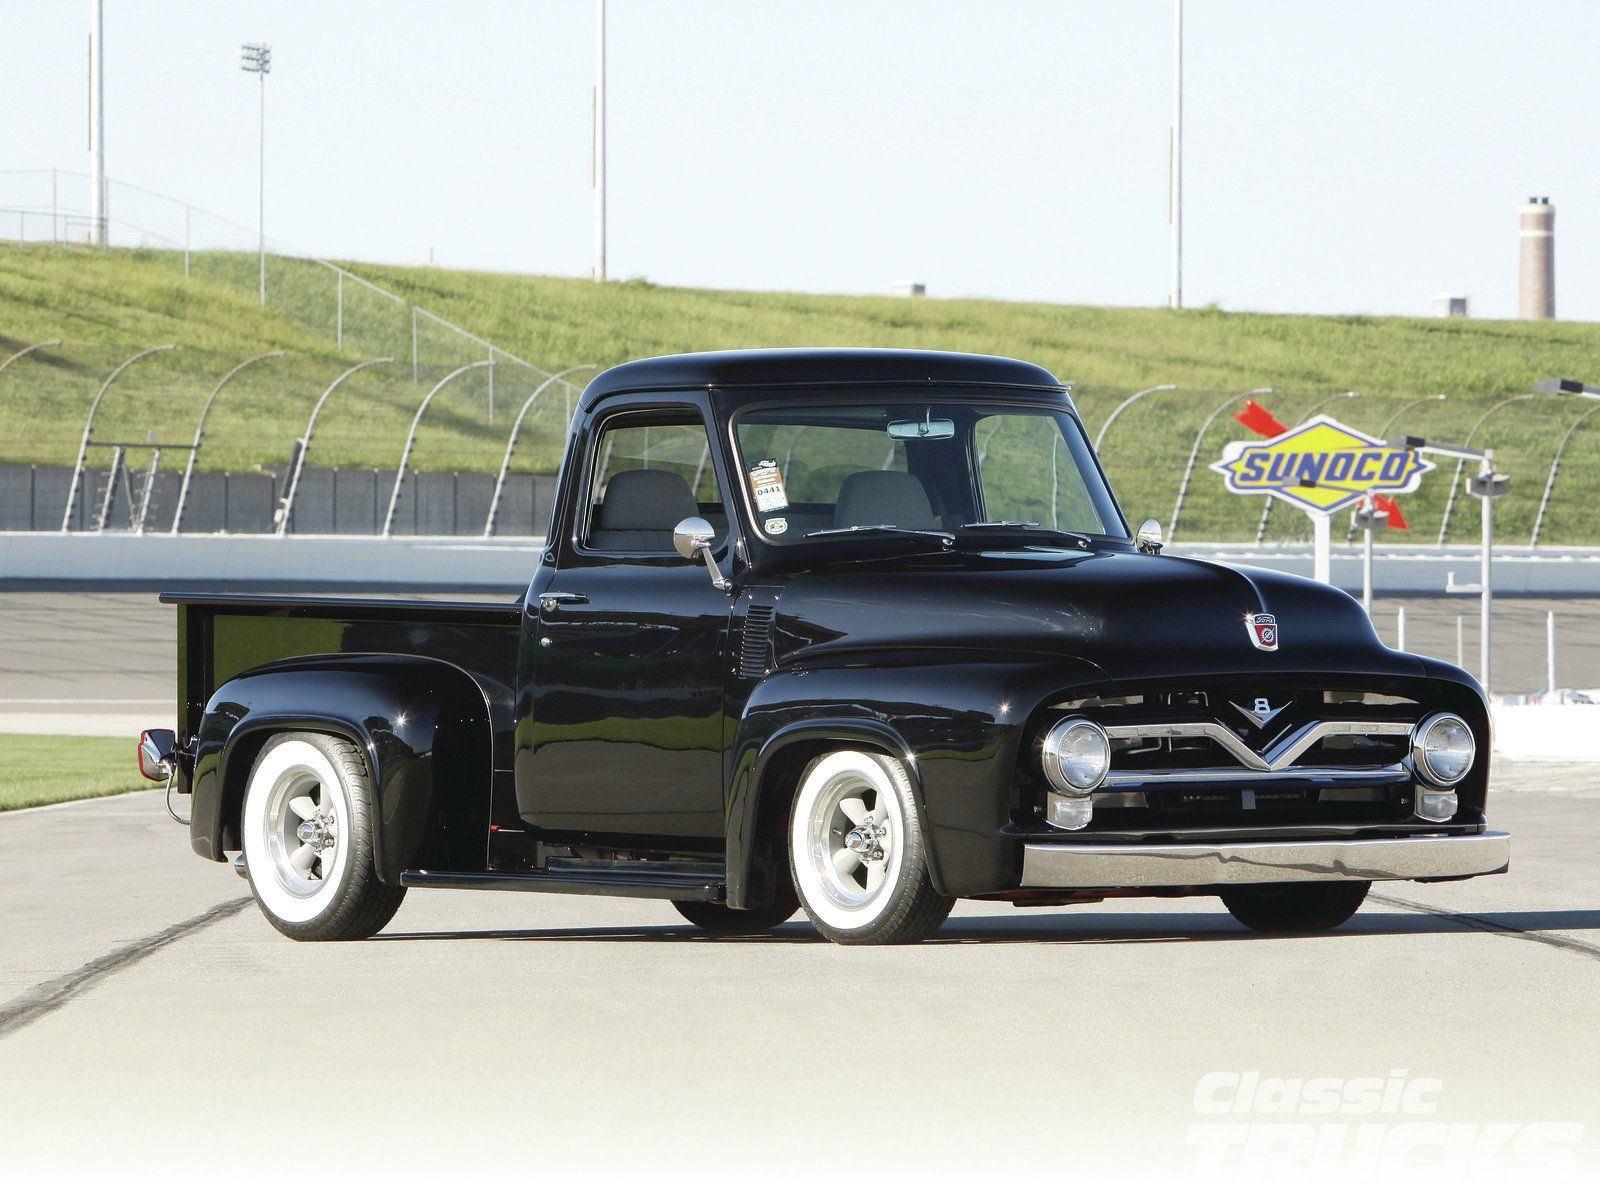 1955 ford f 100 pickup don t the red wheels look great cars trucks warbirds tractors jdh pinterest ford wheels and cars